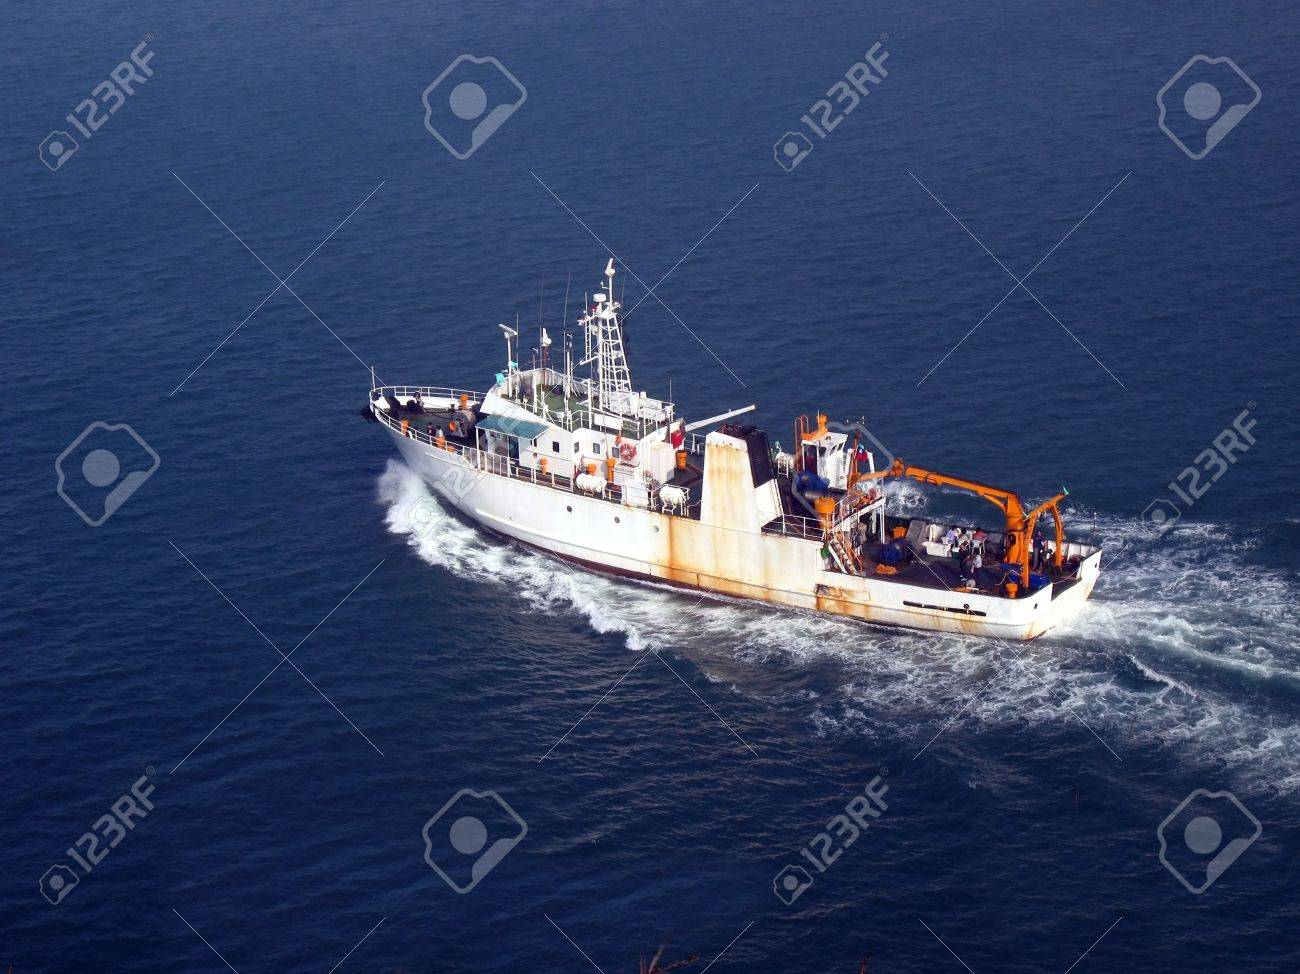 Ship at Sea -- a medium sized vessel is heading out to sea Stock Photo - 2527475